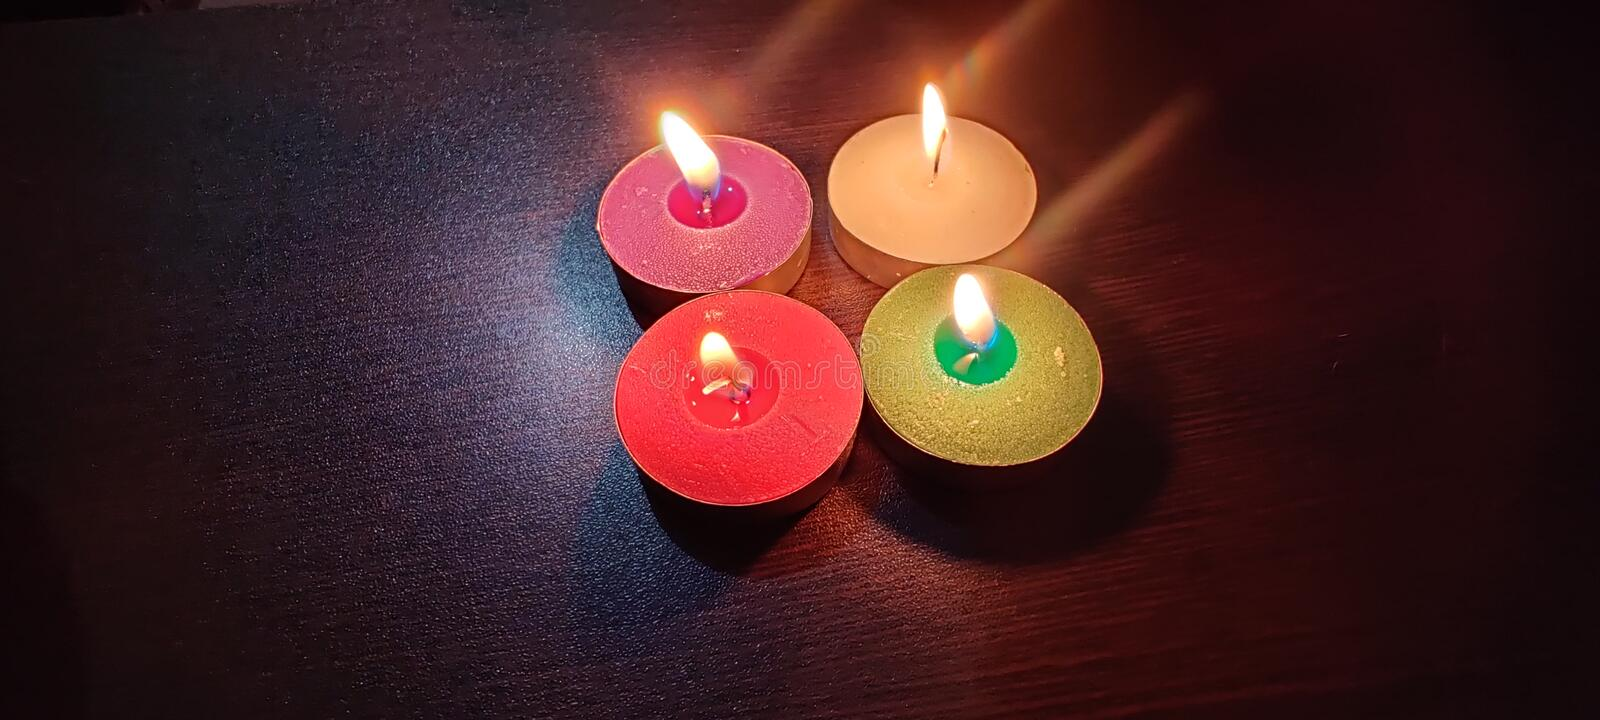 4 lamp green pink yellow red flame royalty free stock photo